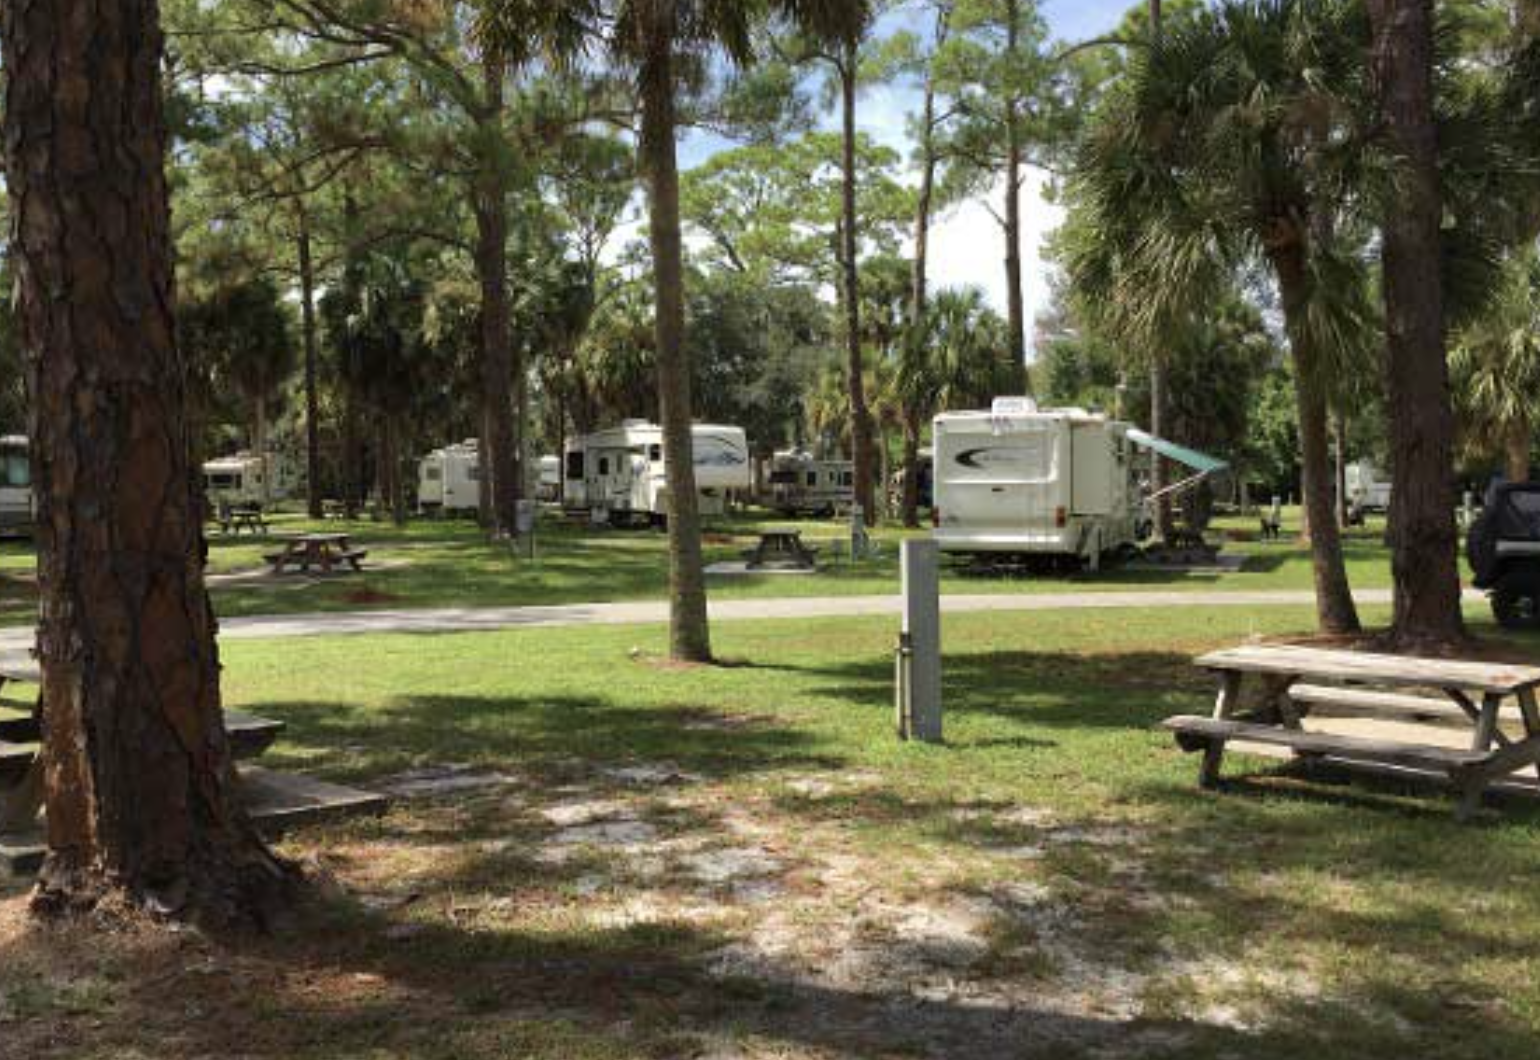 Suncoast-RV Sites